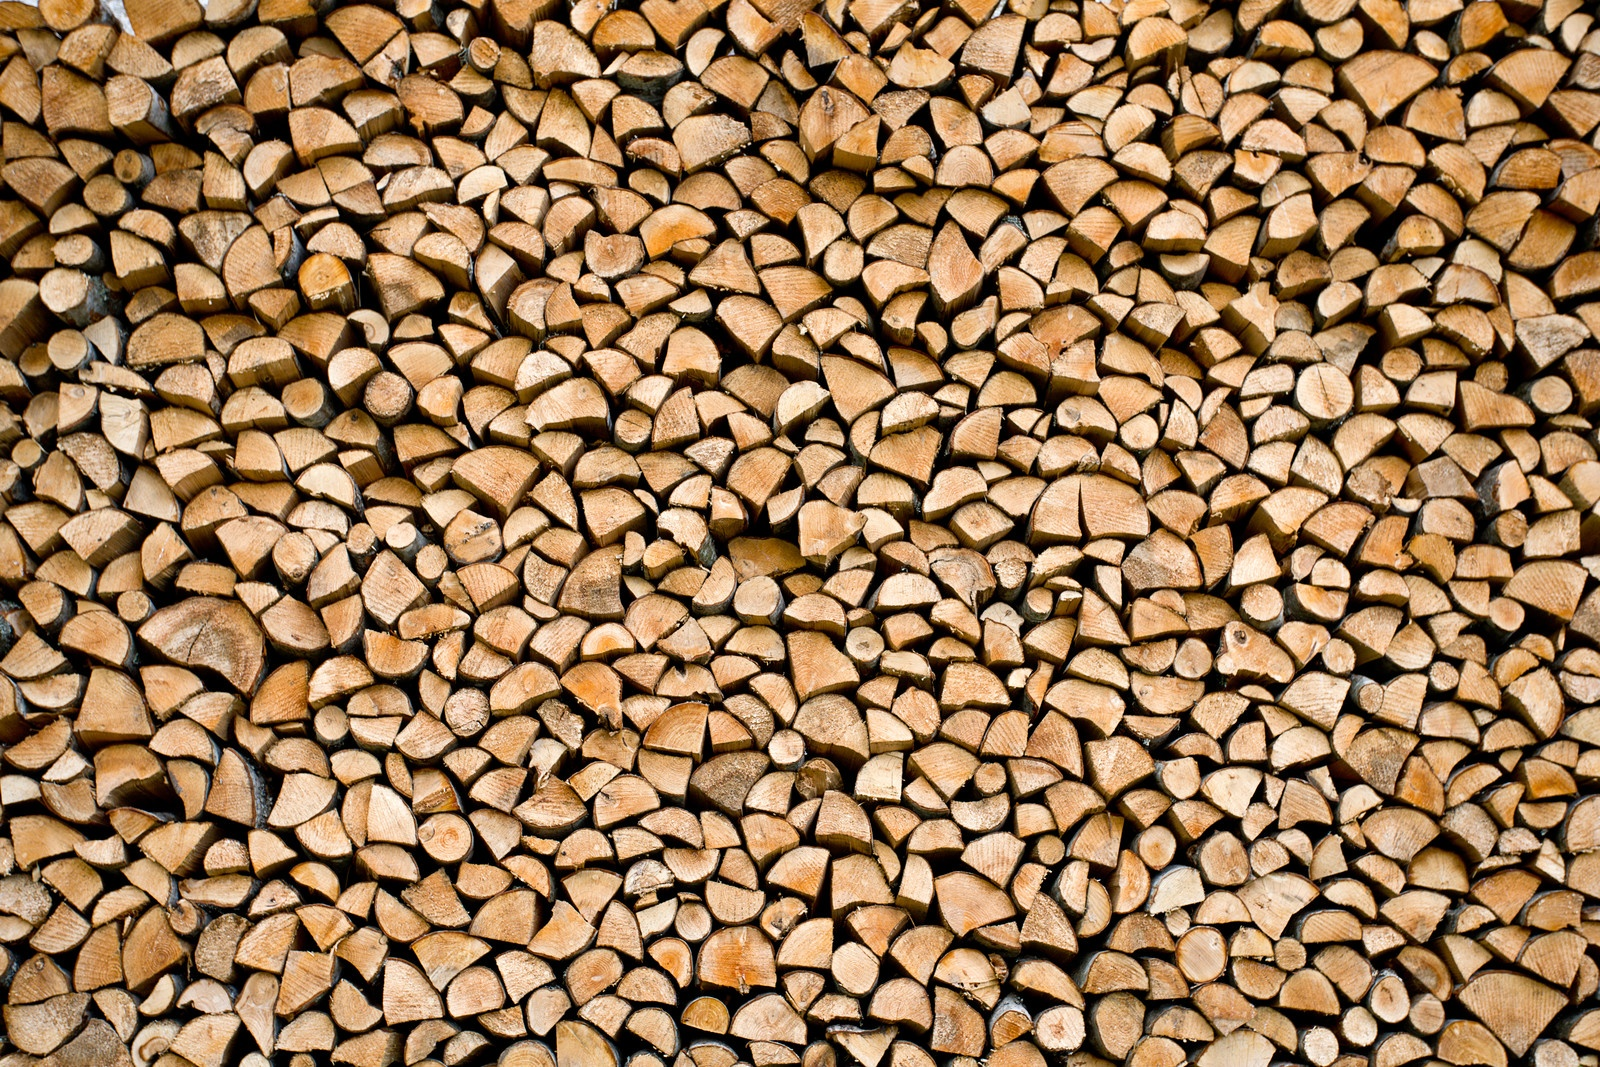 Chopped and stacked firewood